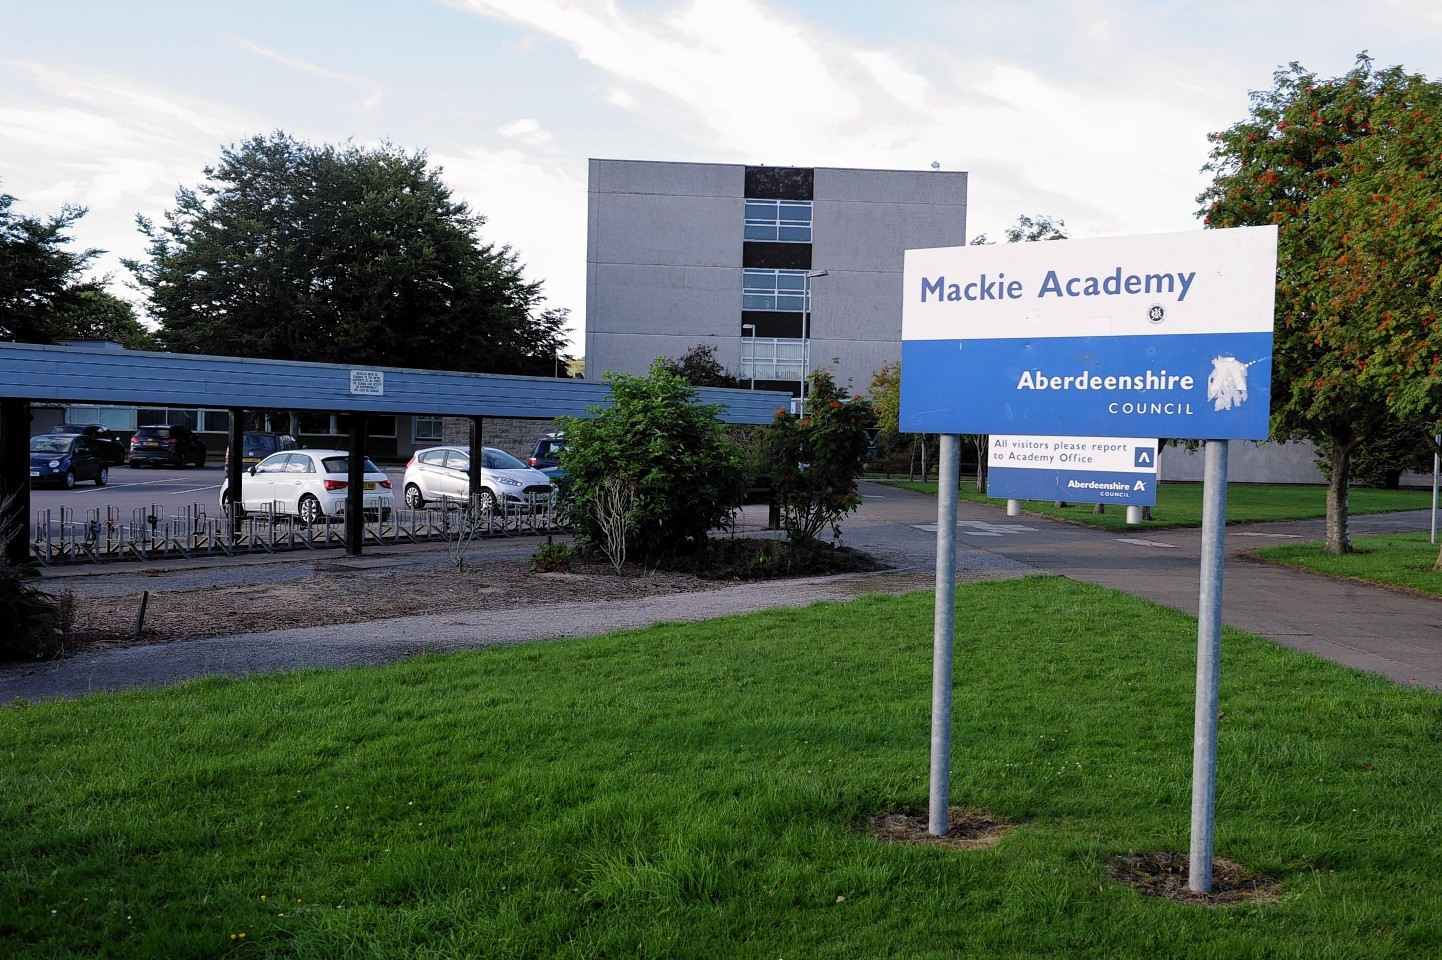 Mackie Academy. Social distancing guidance meant pupils were forced to stand outside in a storm on Tuesday.